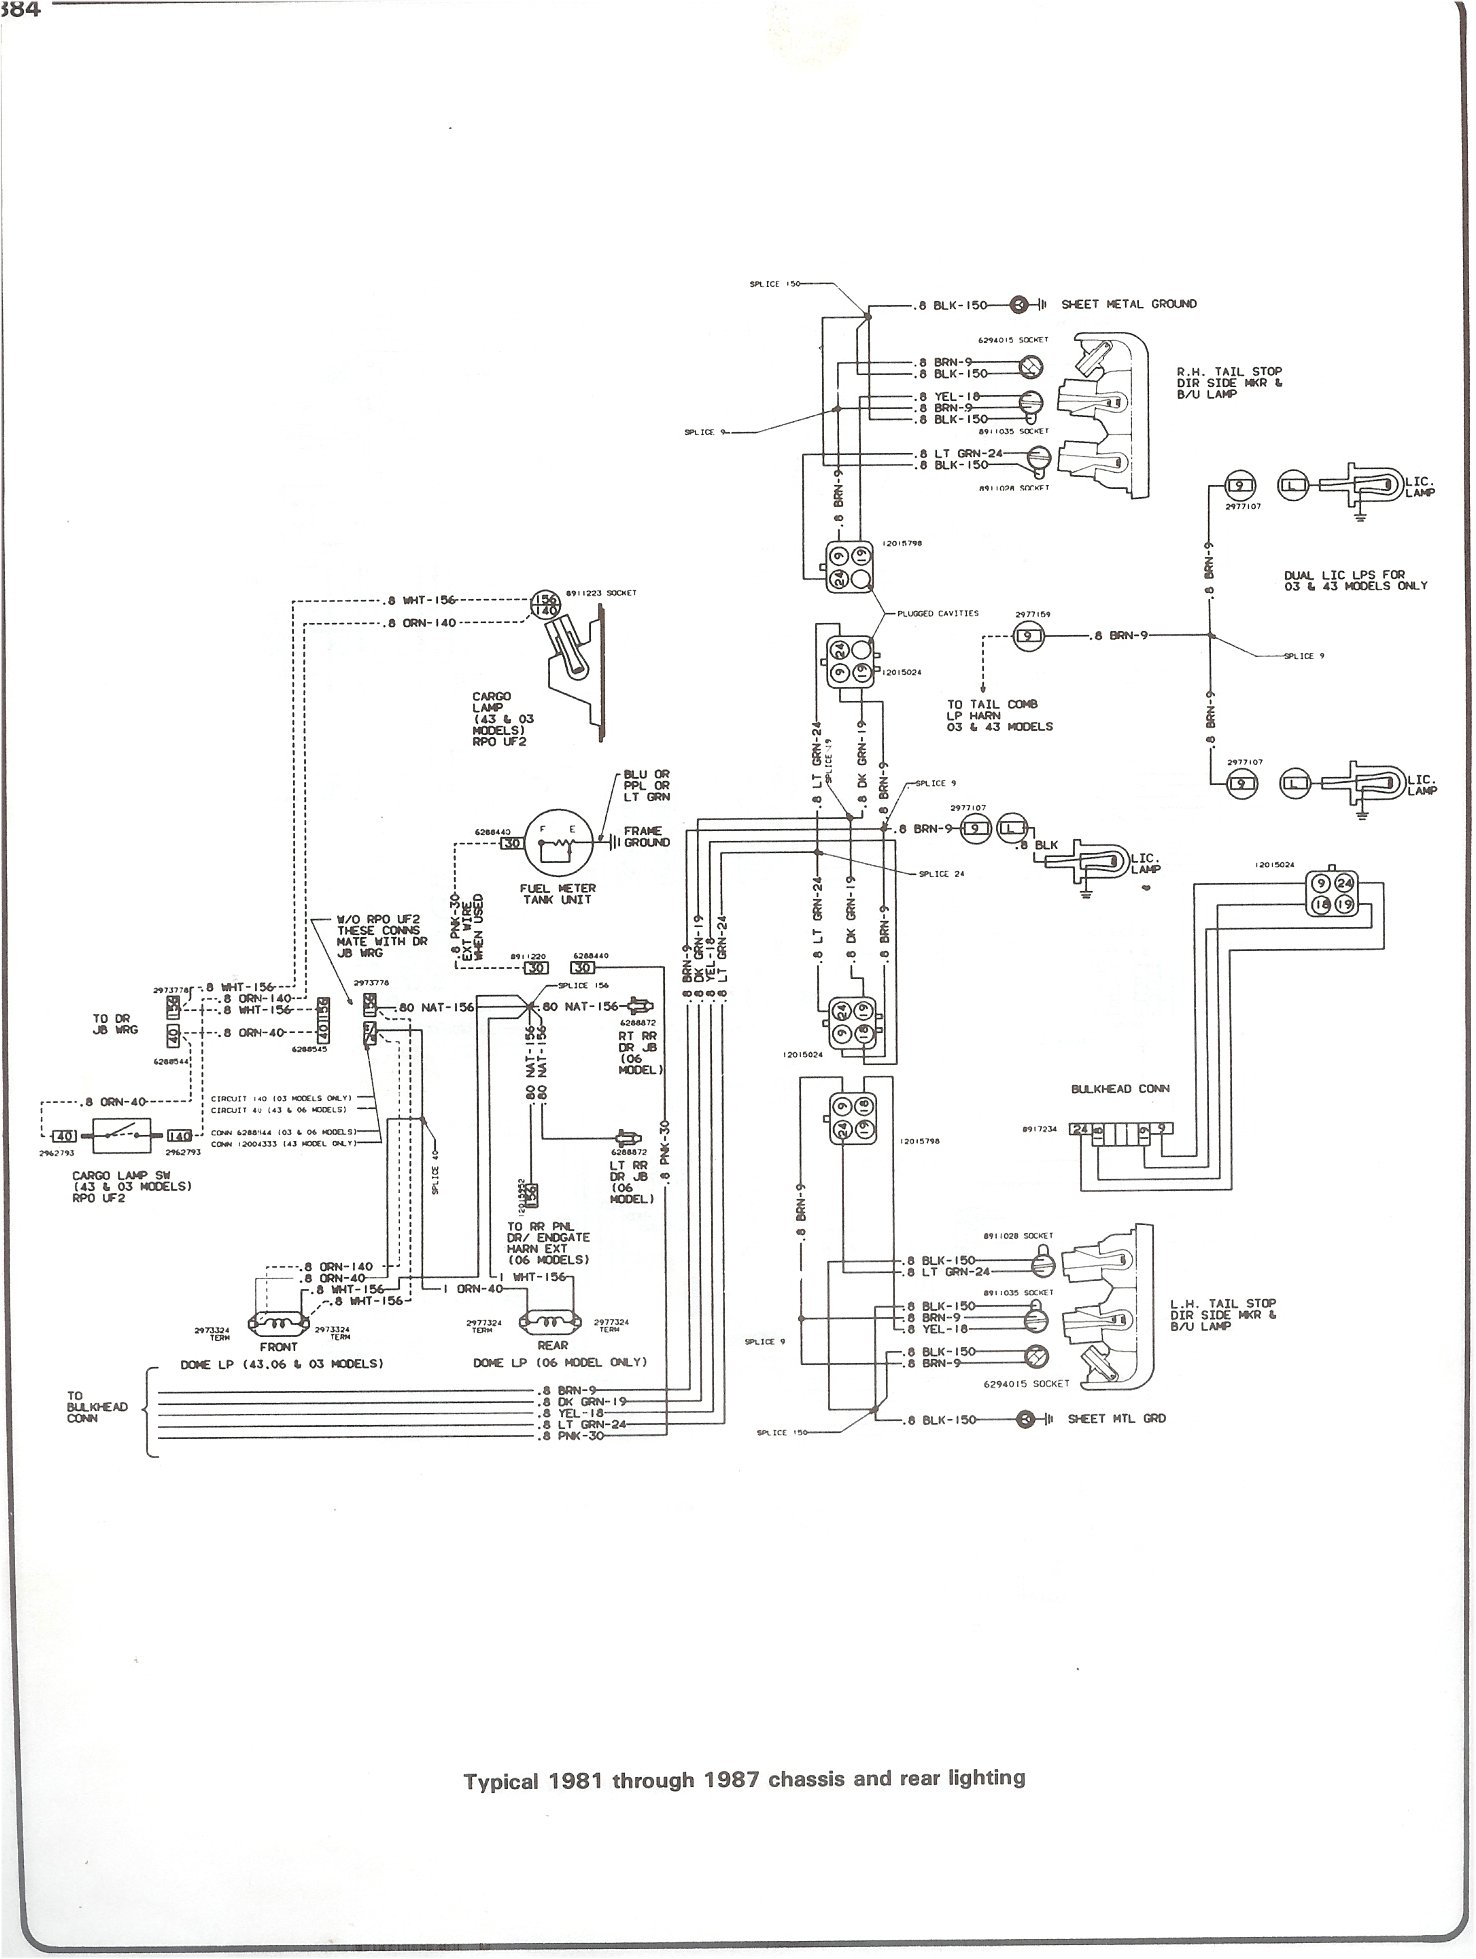 81 87_chass_rr_light complete 73 87 wiring diagrams 1988 GMC Sierra 1500 at gsmx.co